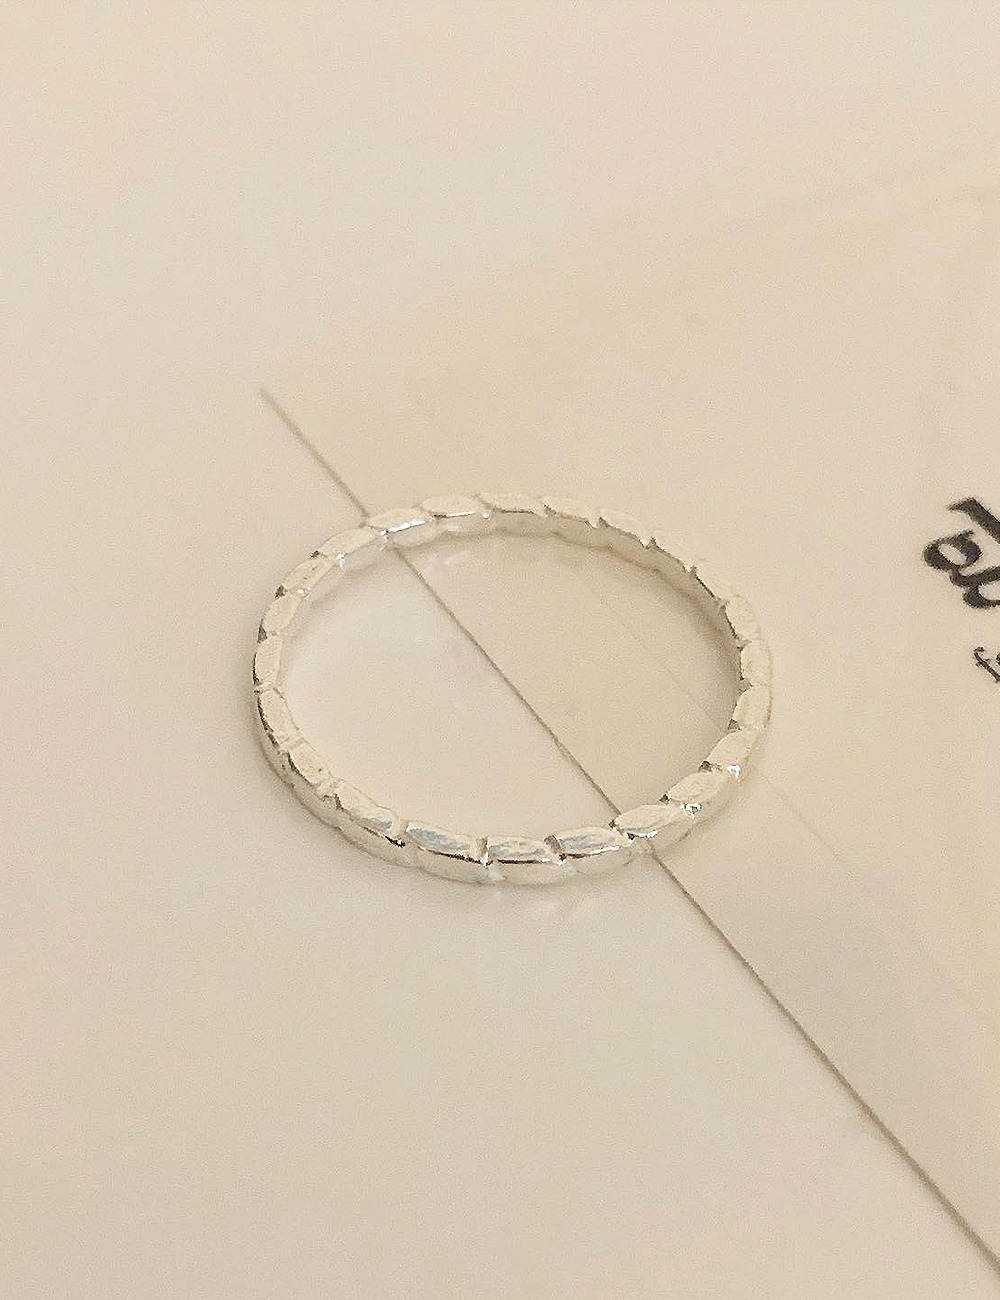 (silver 92.5) Blon ring